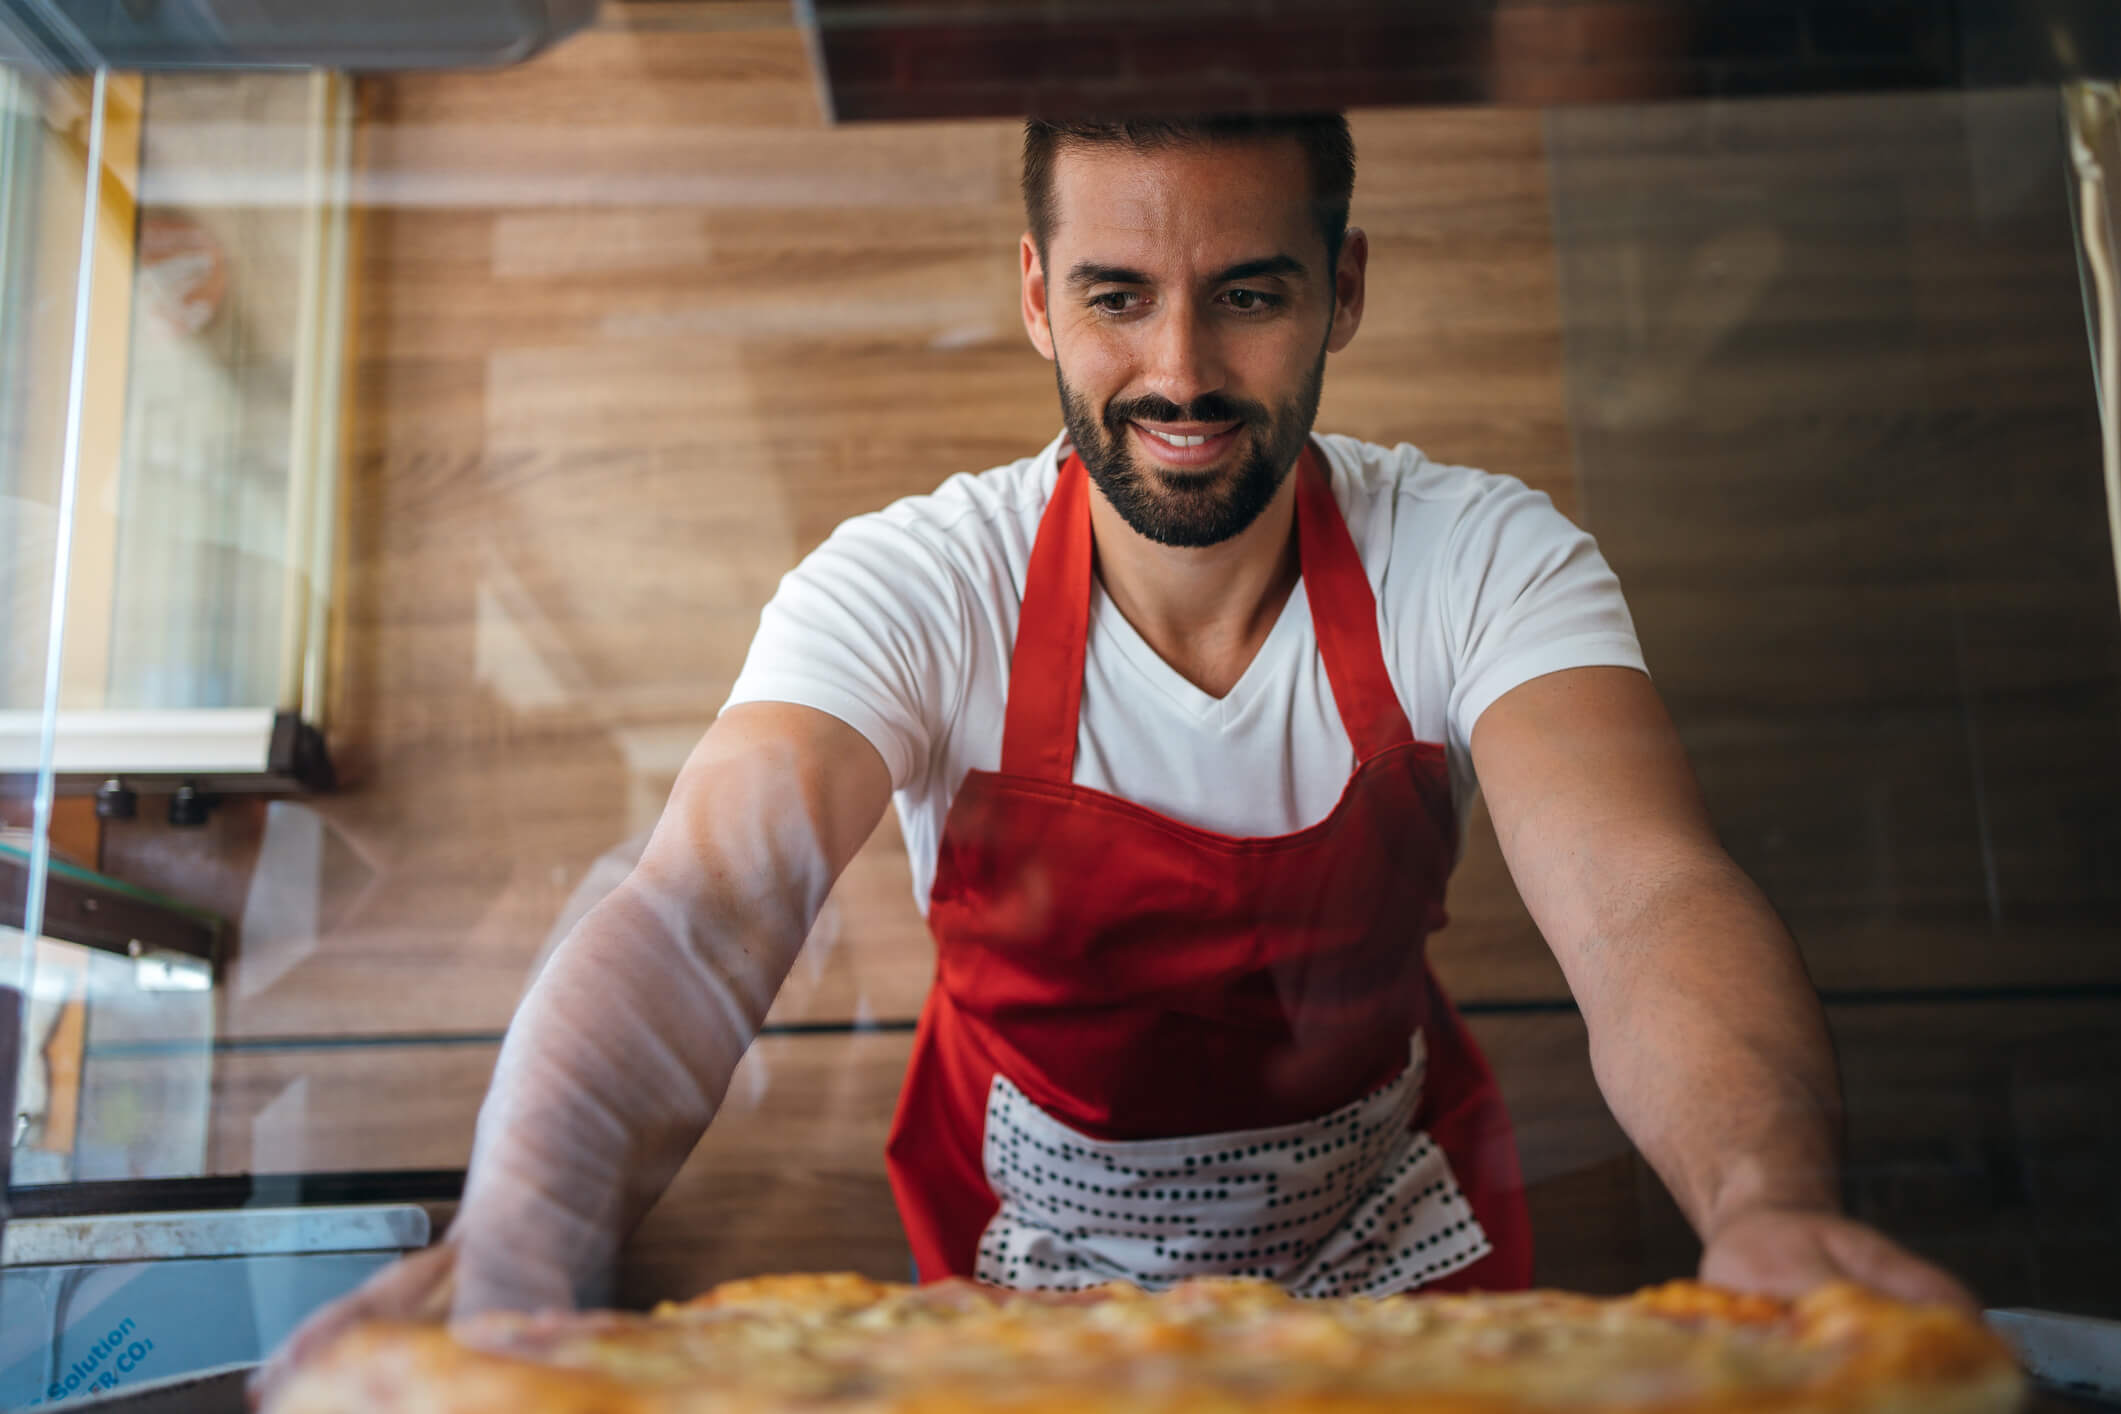 pizza maker putting pizza in display case